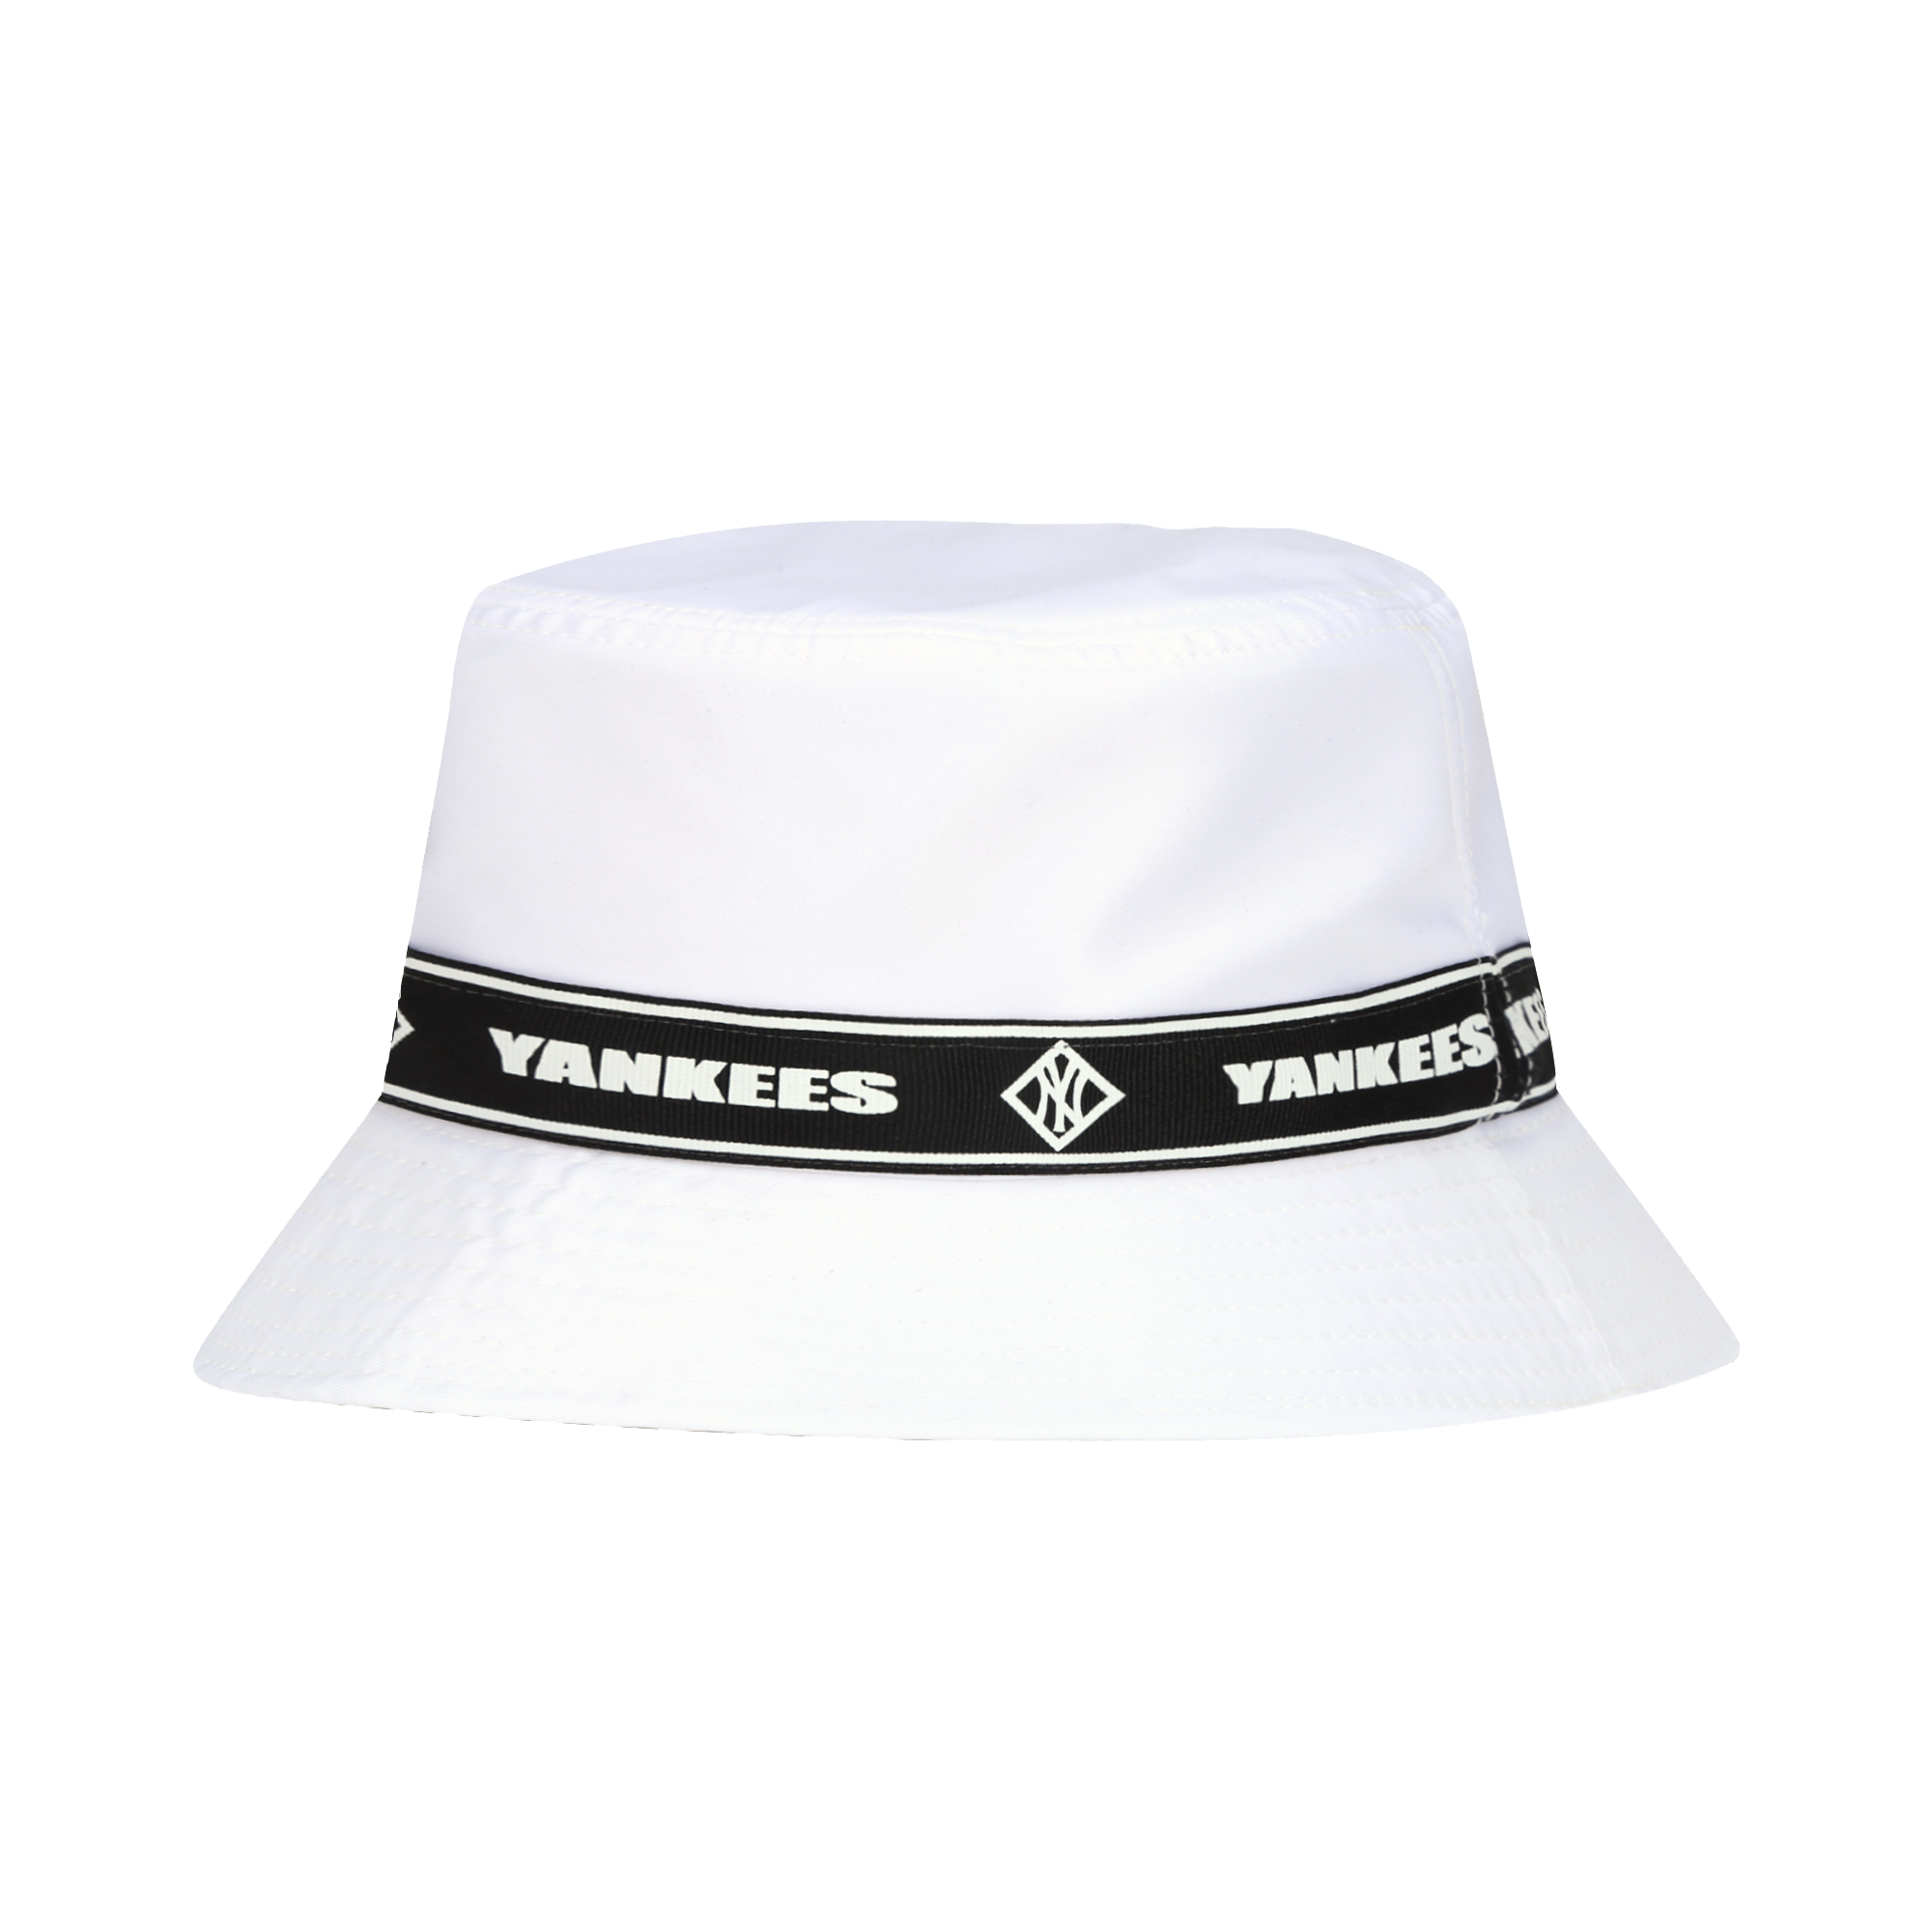 NEW YORK YANKEES DIAMOND TAPE BUCKET HAT